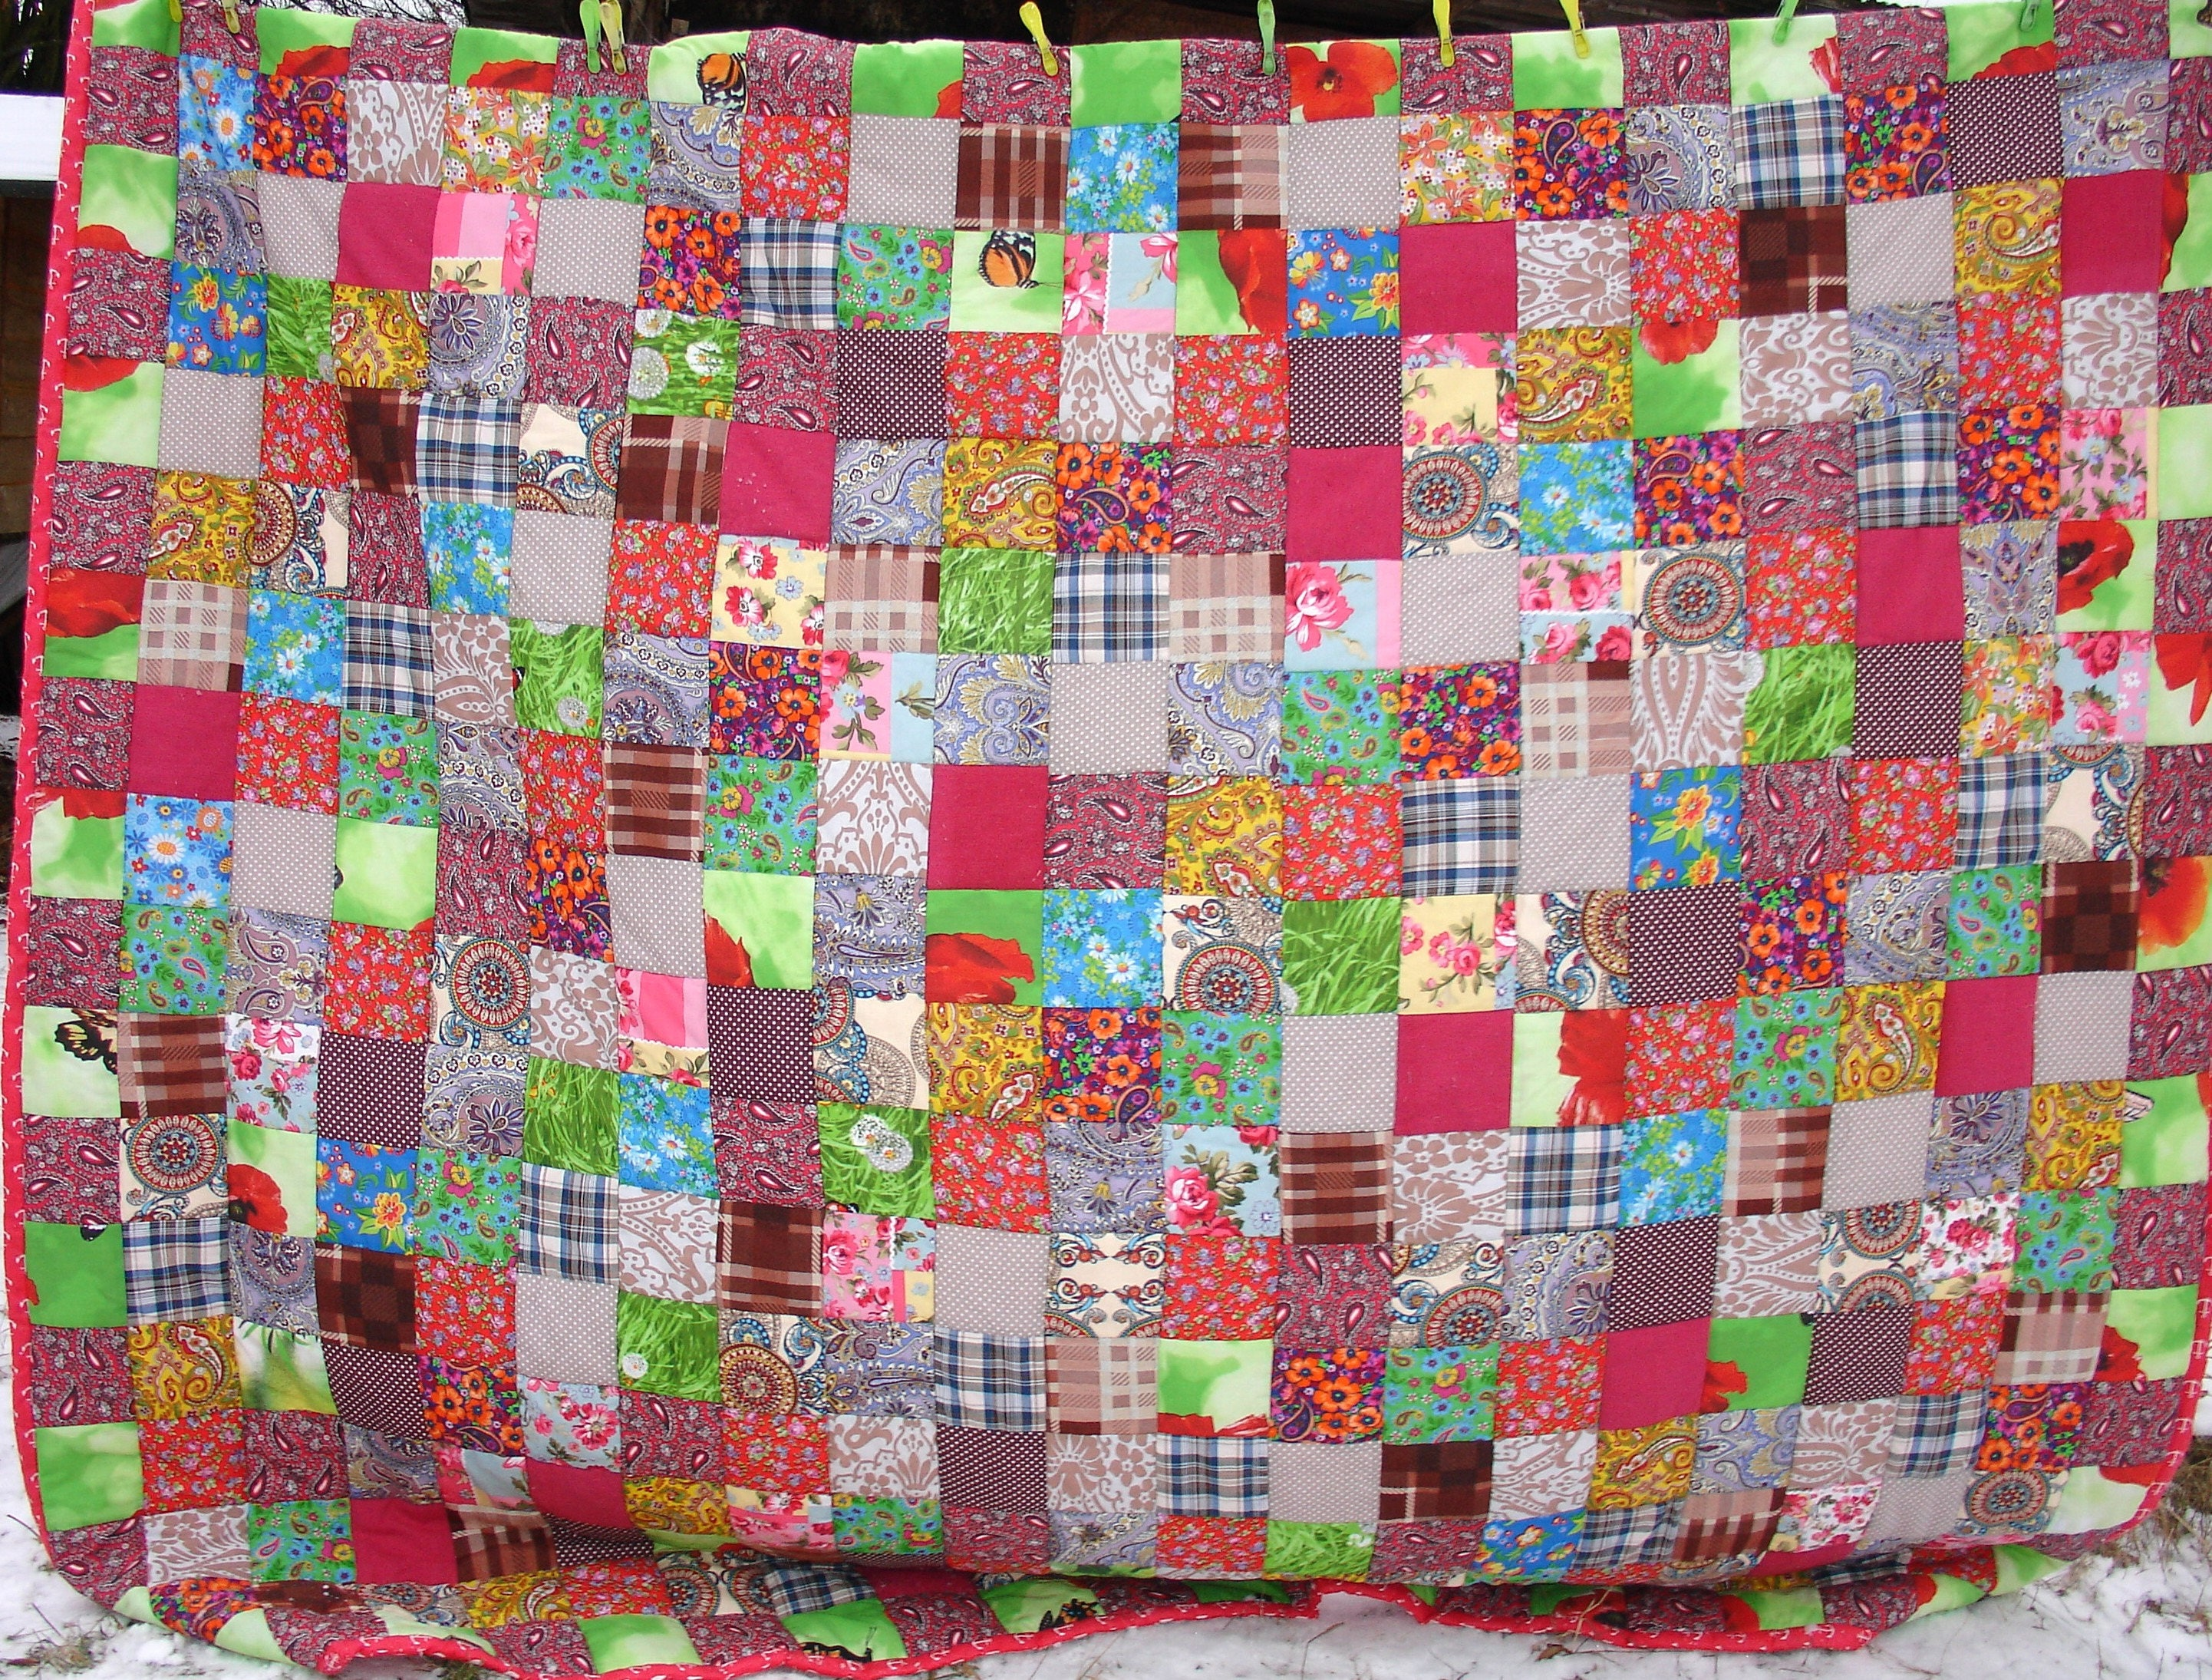 quilt the sale img for farm share show this at quilts dudley homemade